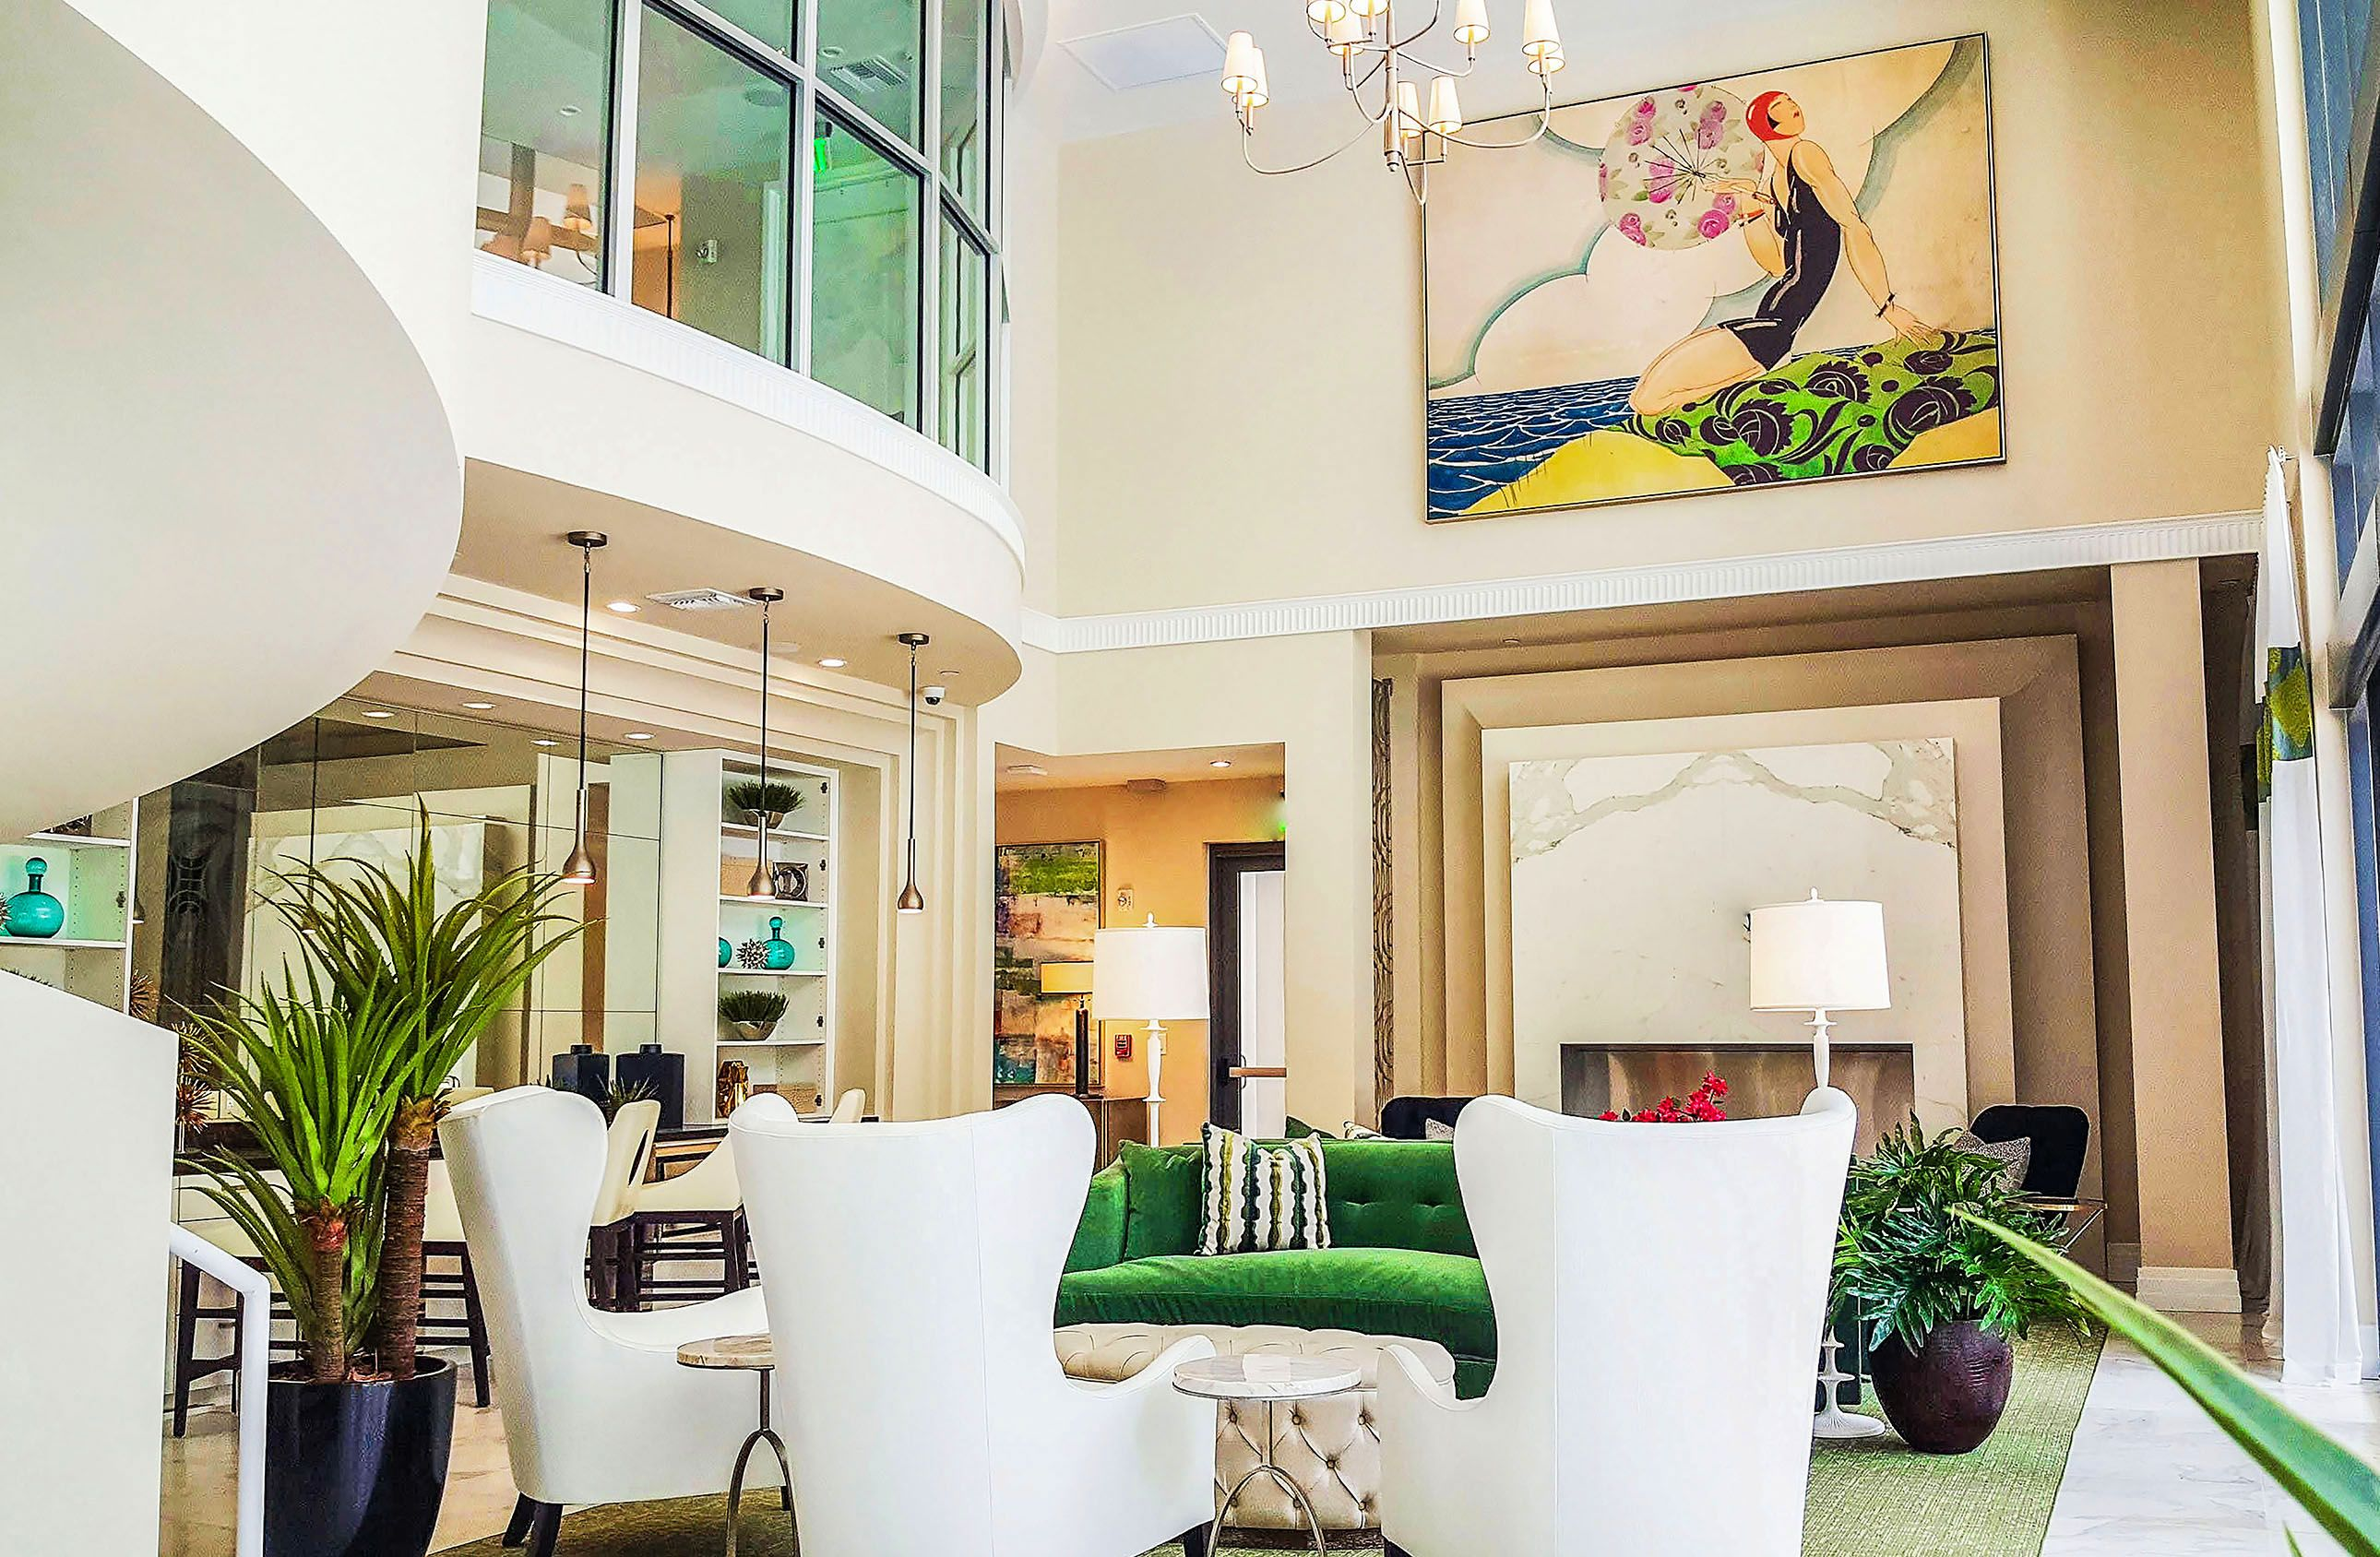 Best apartment community clubhouse amenity design spaces